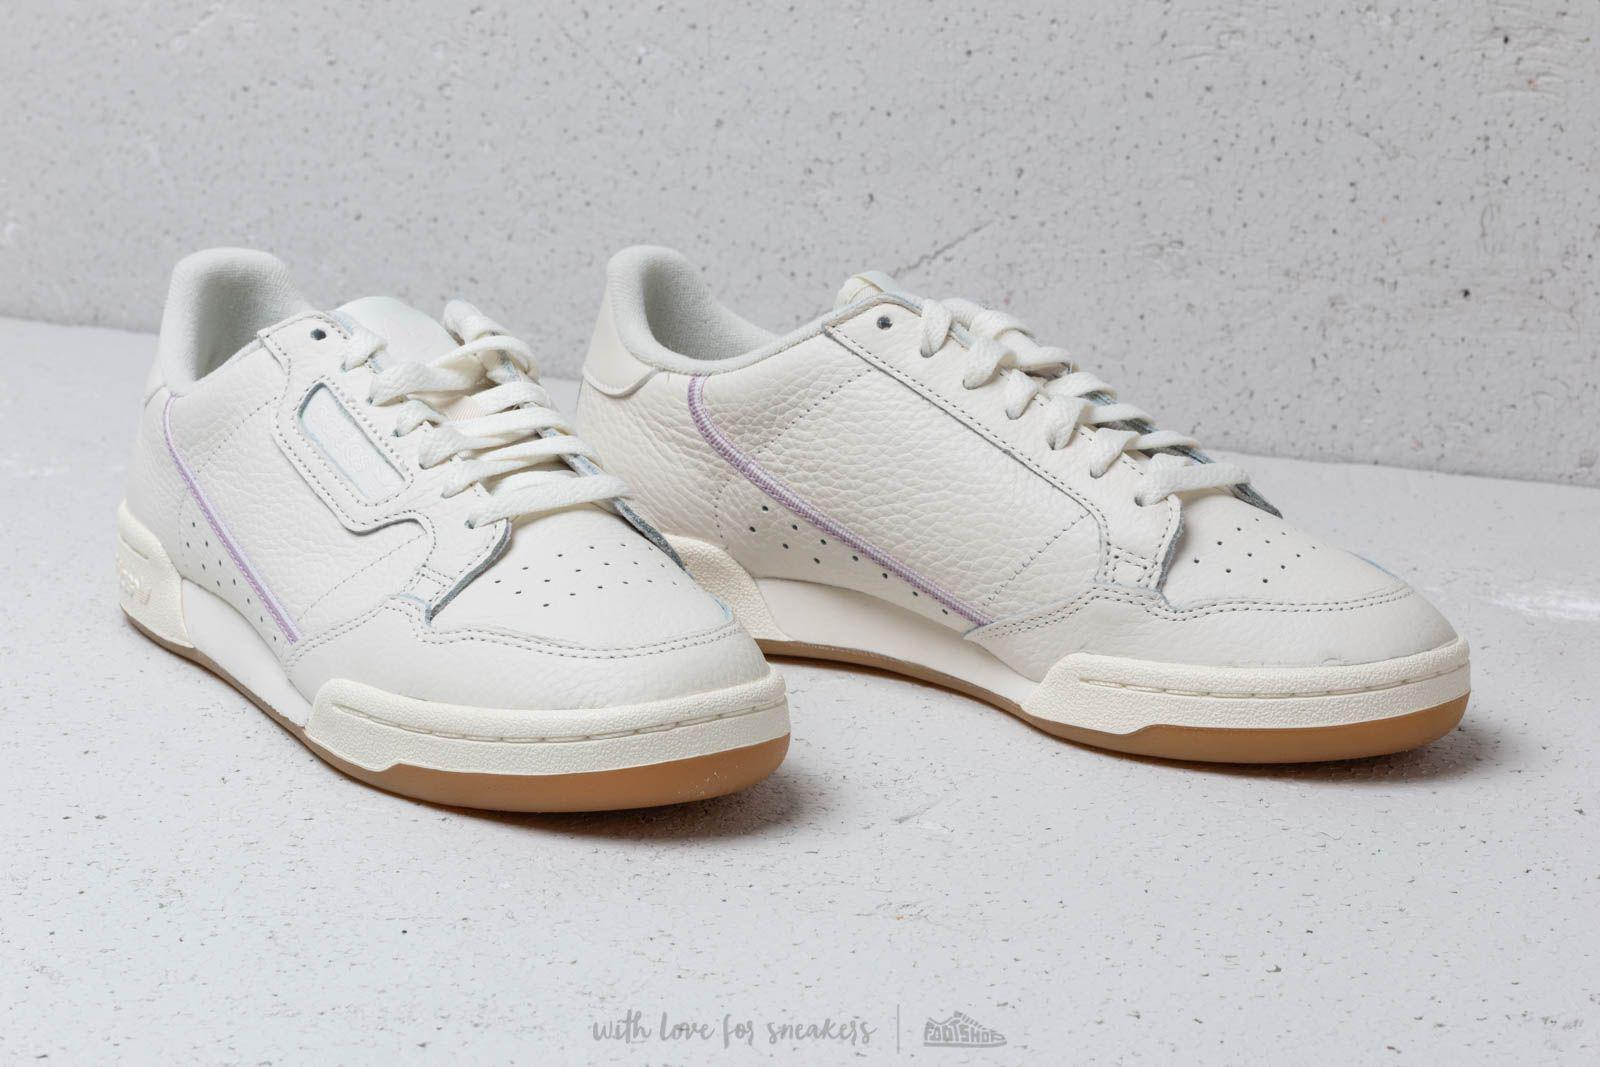 info for 1567a 8f014 Lyst - adidas Originals Adidas Continental 80 W Off White Or